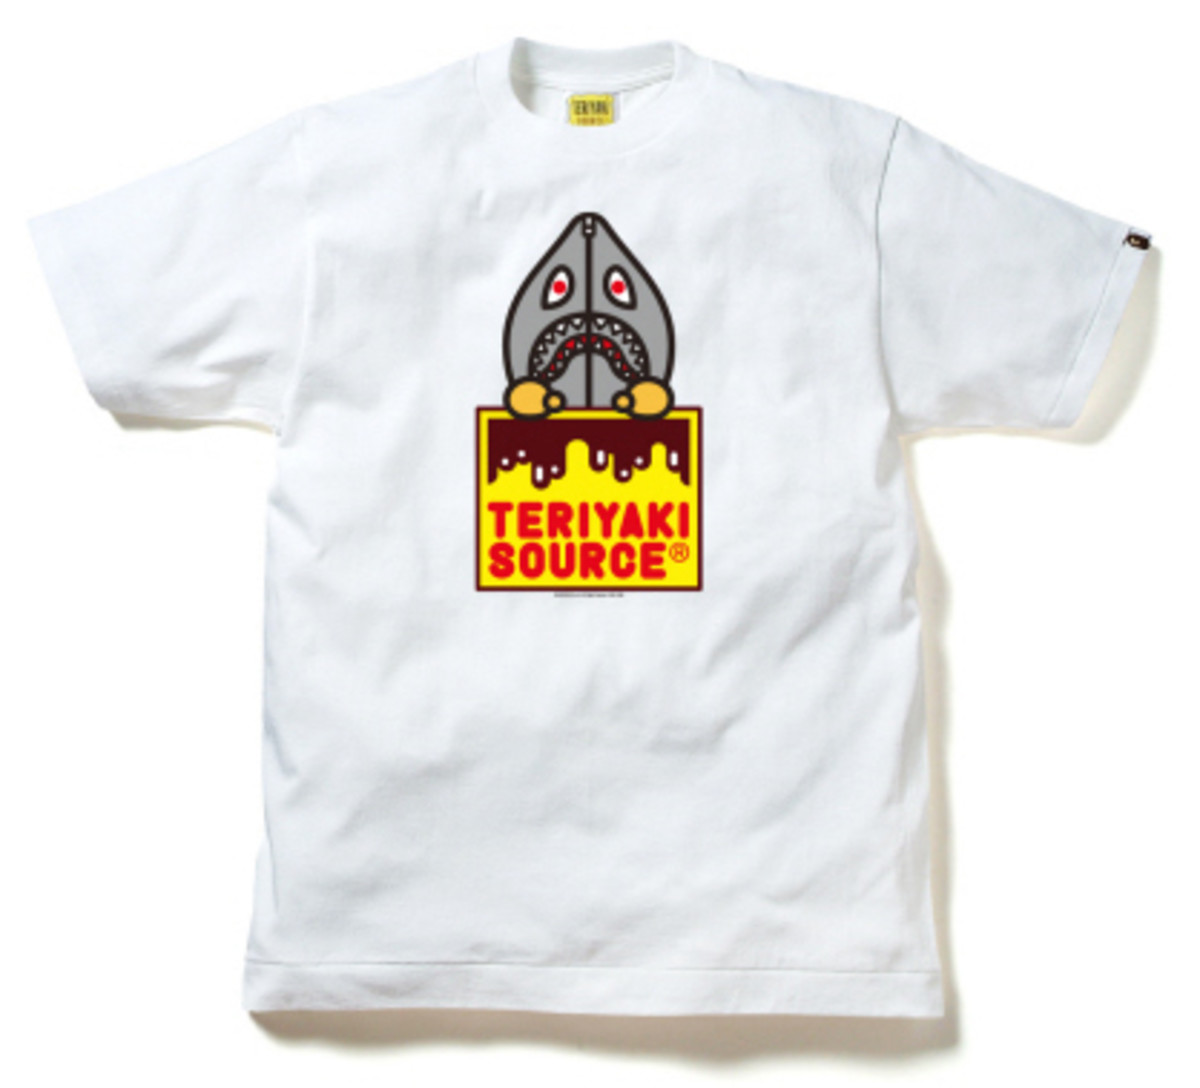 BAPE - Teriyaki Source T-Shirt - Animal Hoodie Print